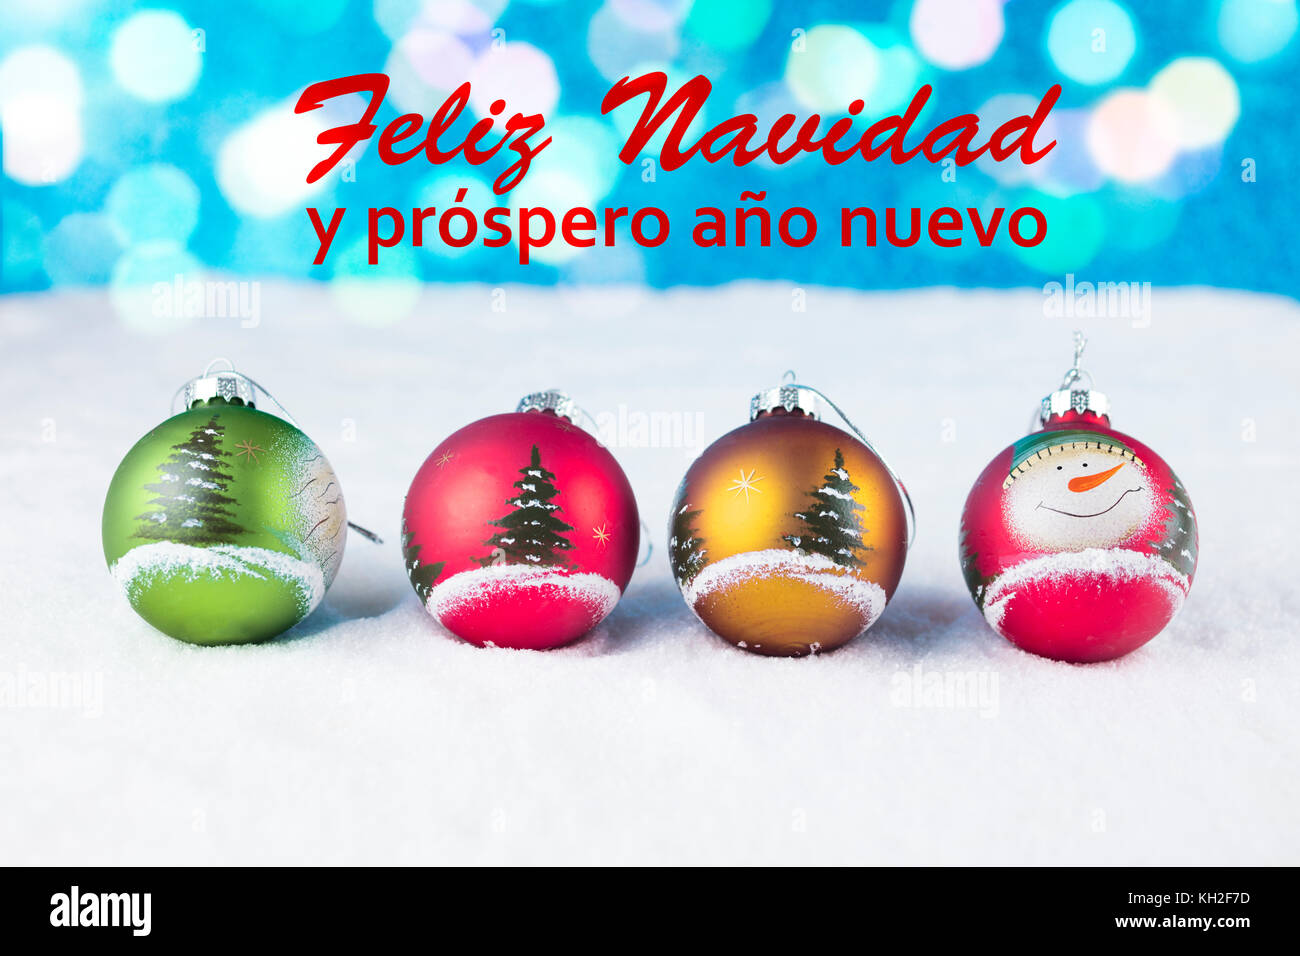 Group of colorful Christmas balls with text in Spanish 'Feliz Navidad y prospero año nuevo' in white - Stock Image